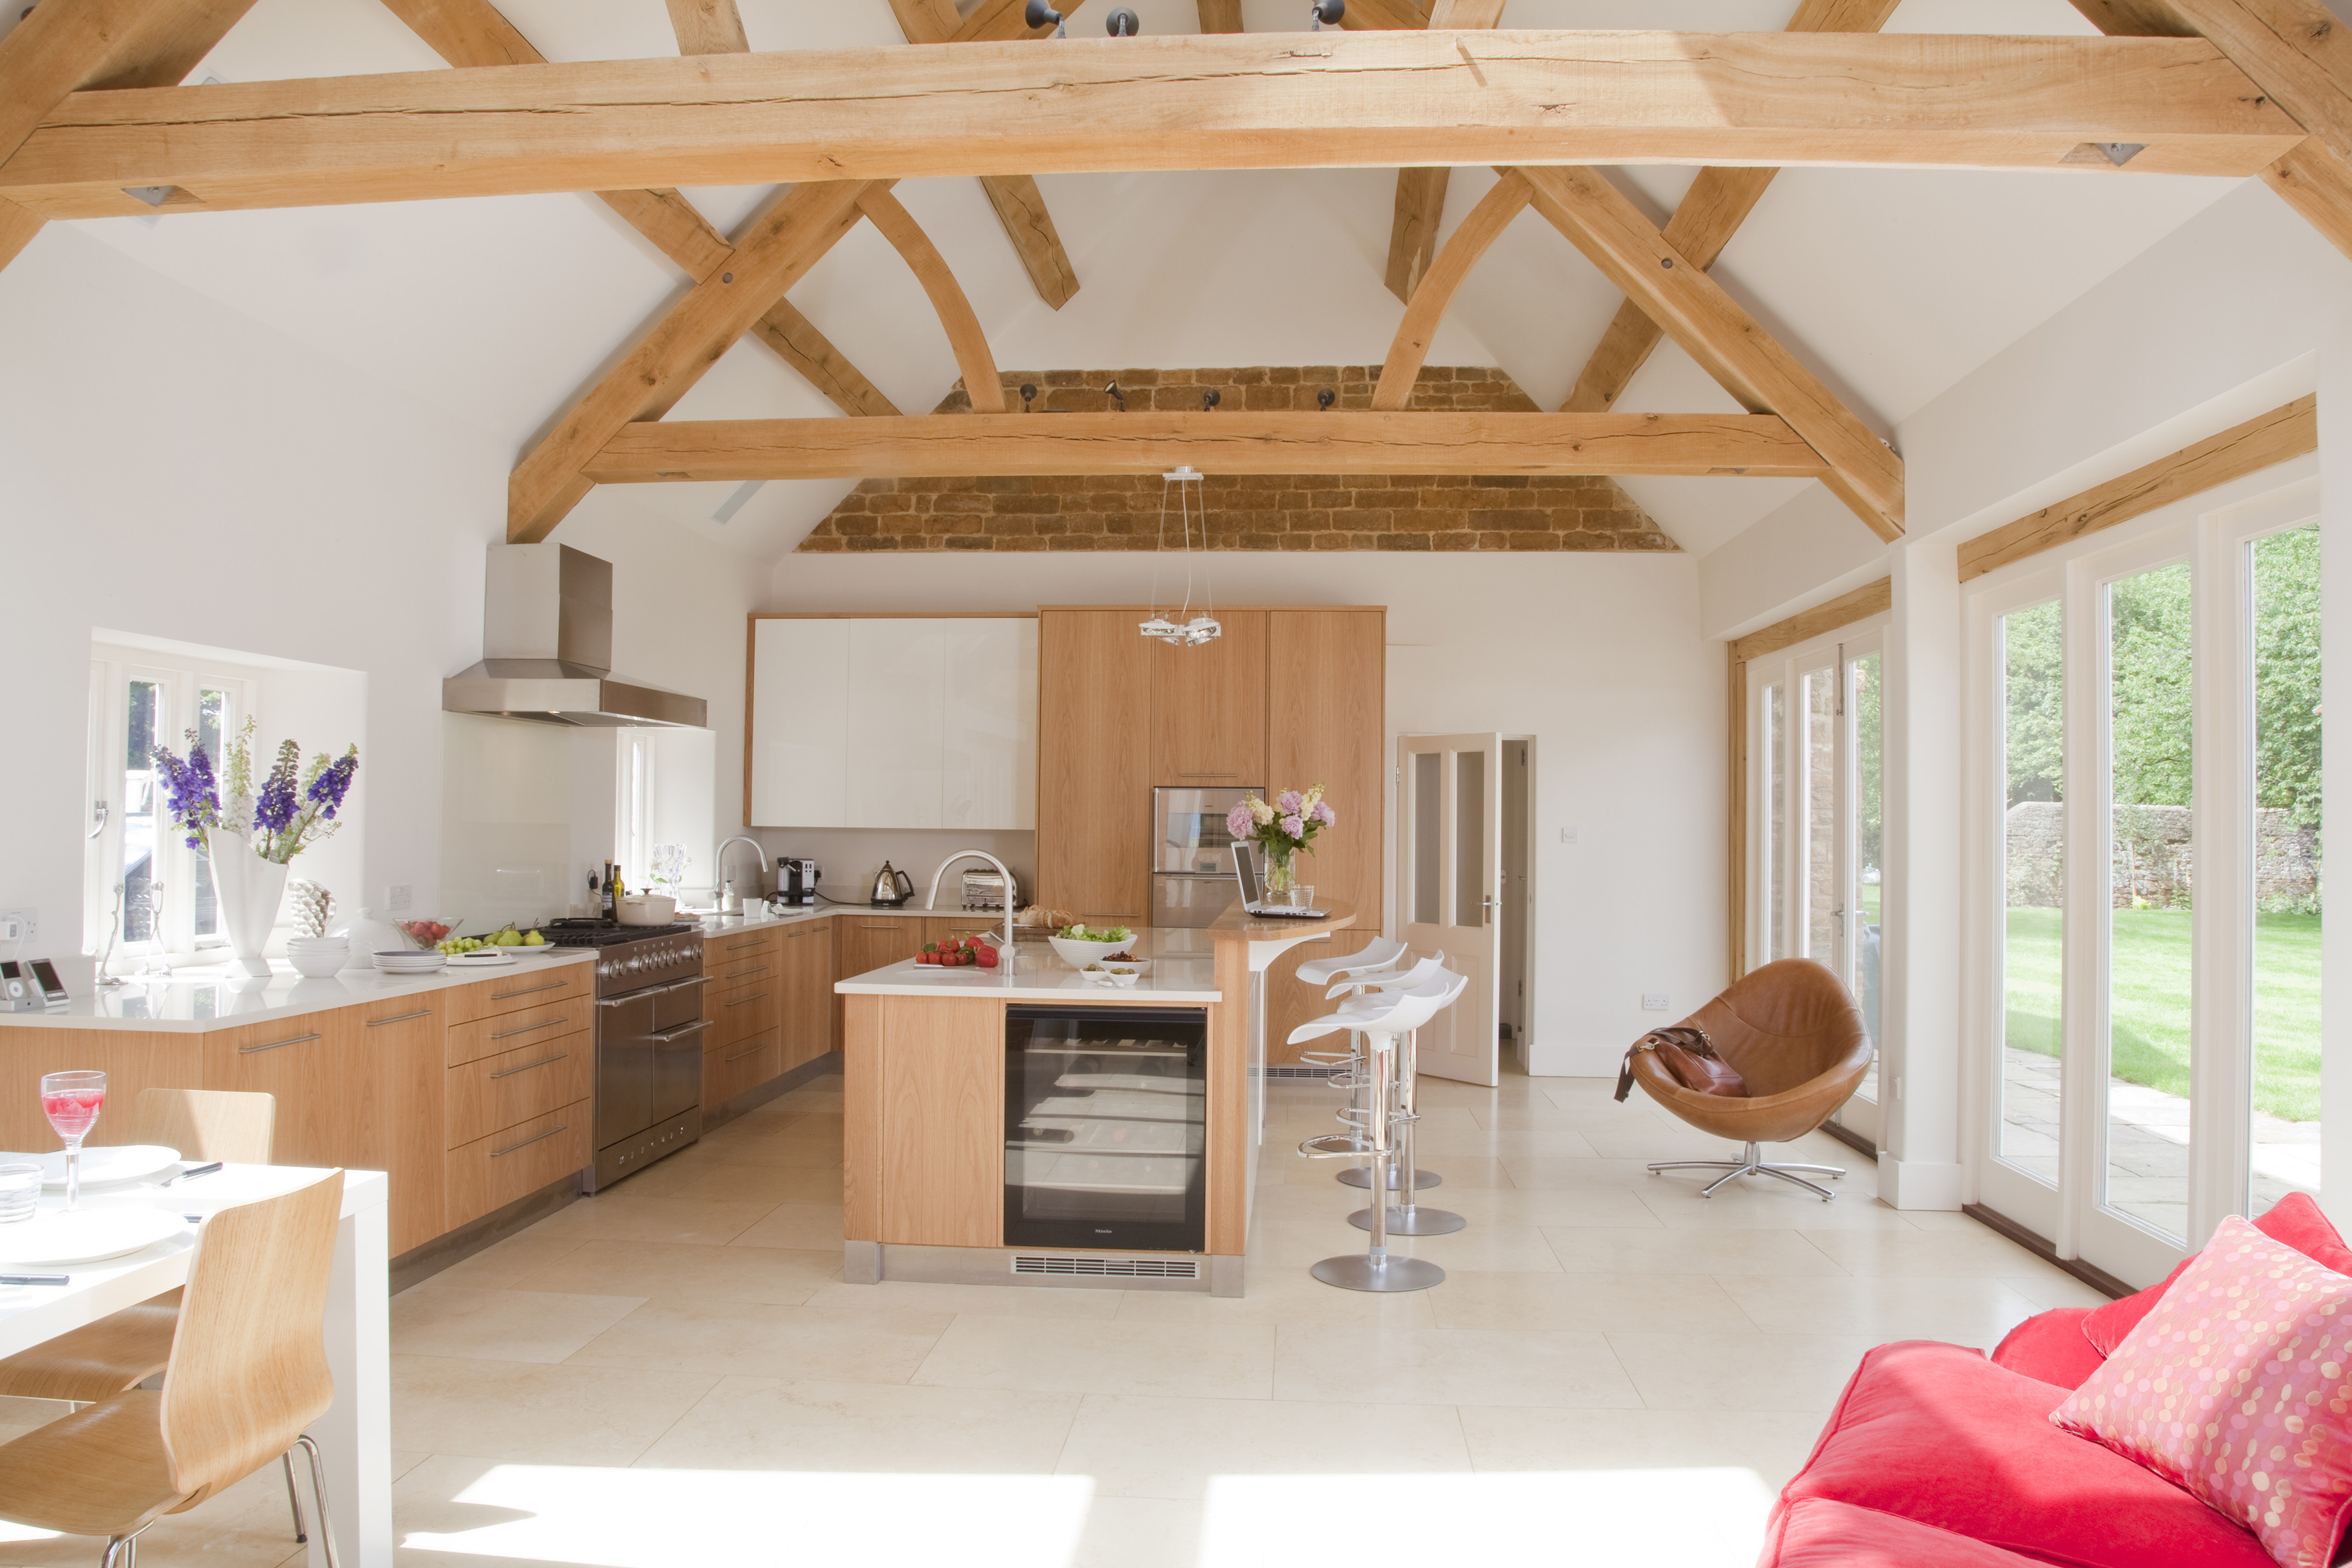 Kitchen With Beams By Woodstock Furniture Archello